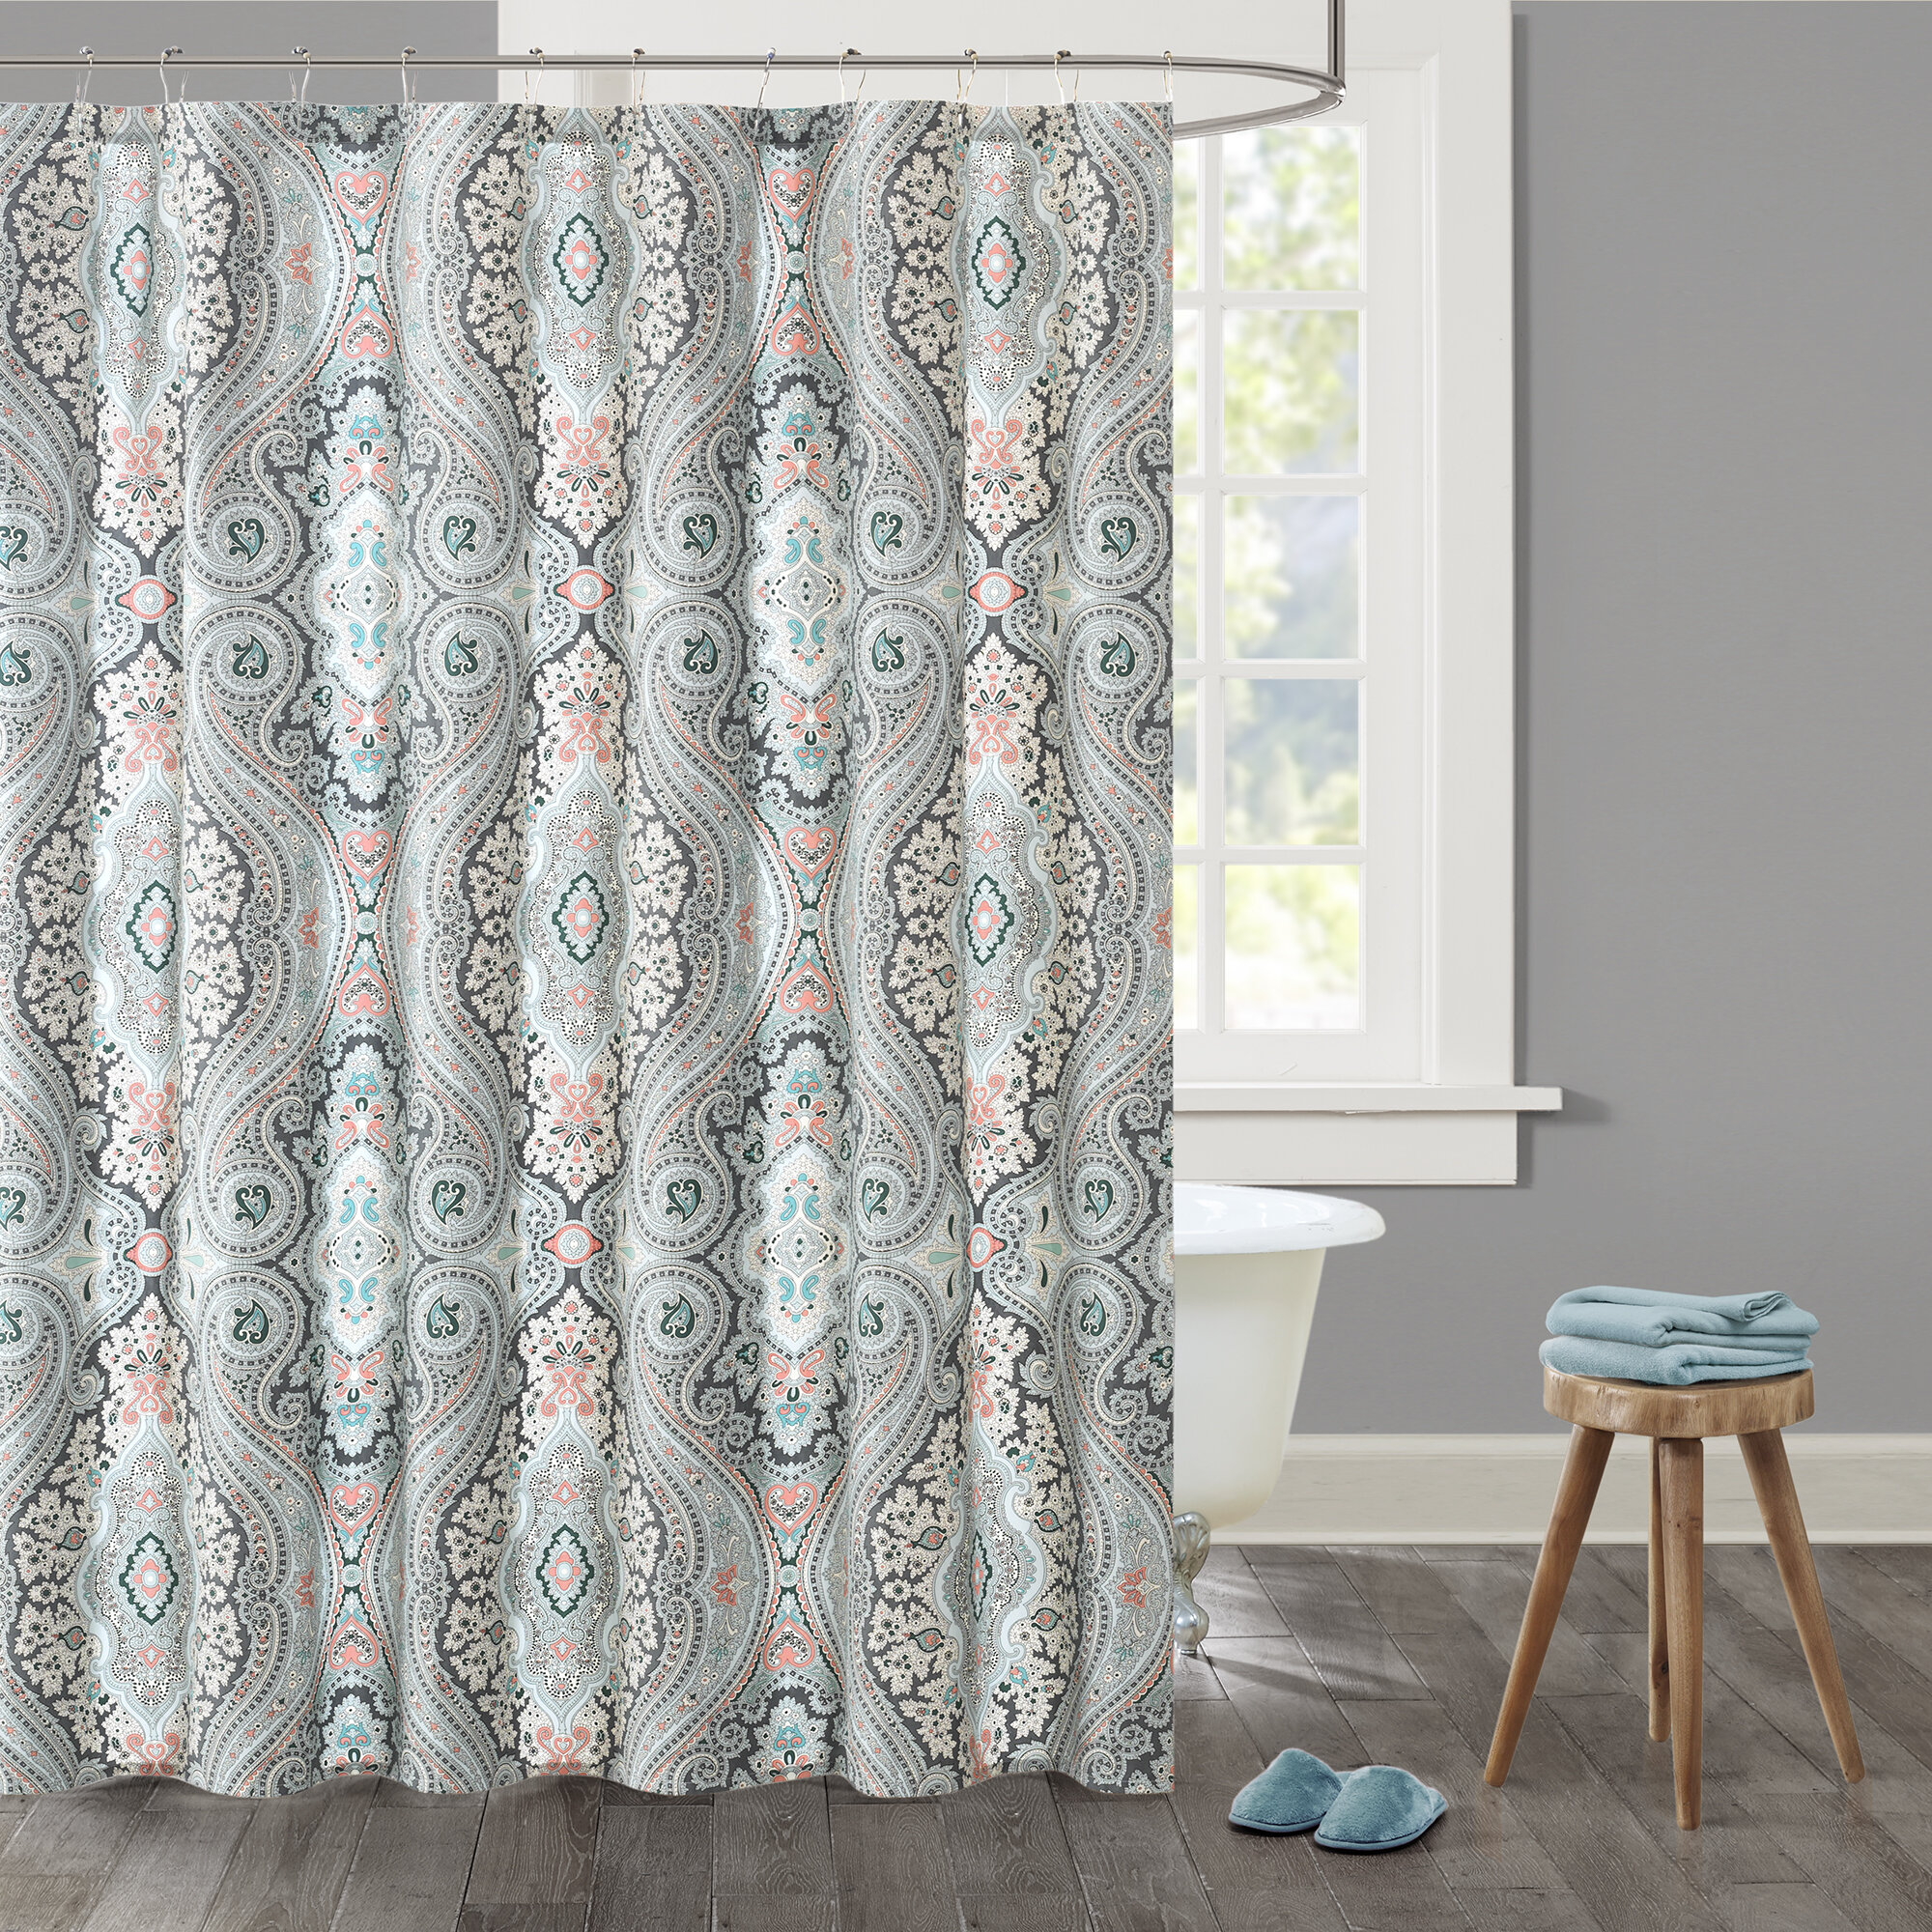 shower com hole how no dollclique x to windows drilling curtain for stall ideas soozone curtains hang without rod living room a holes